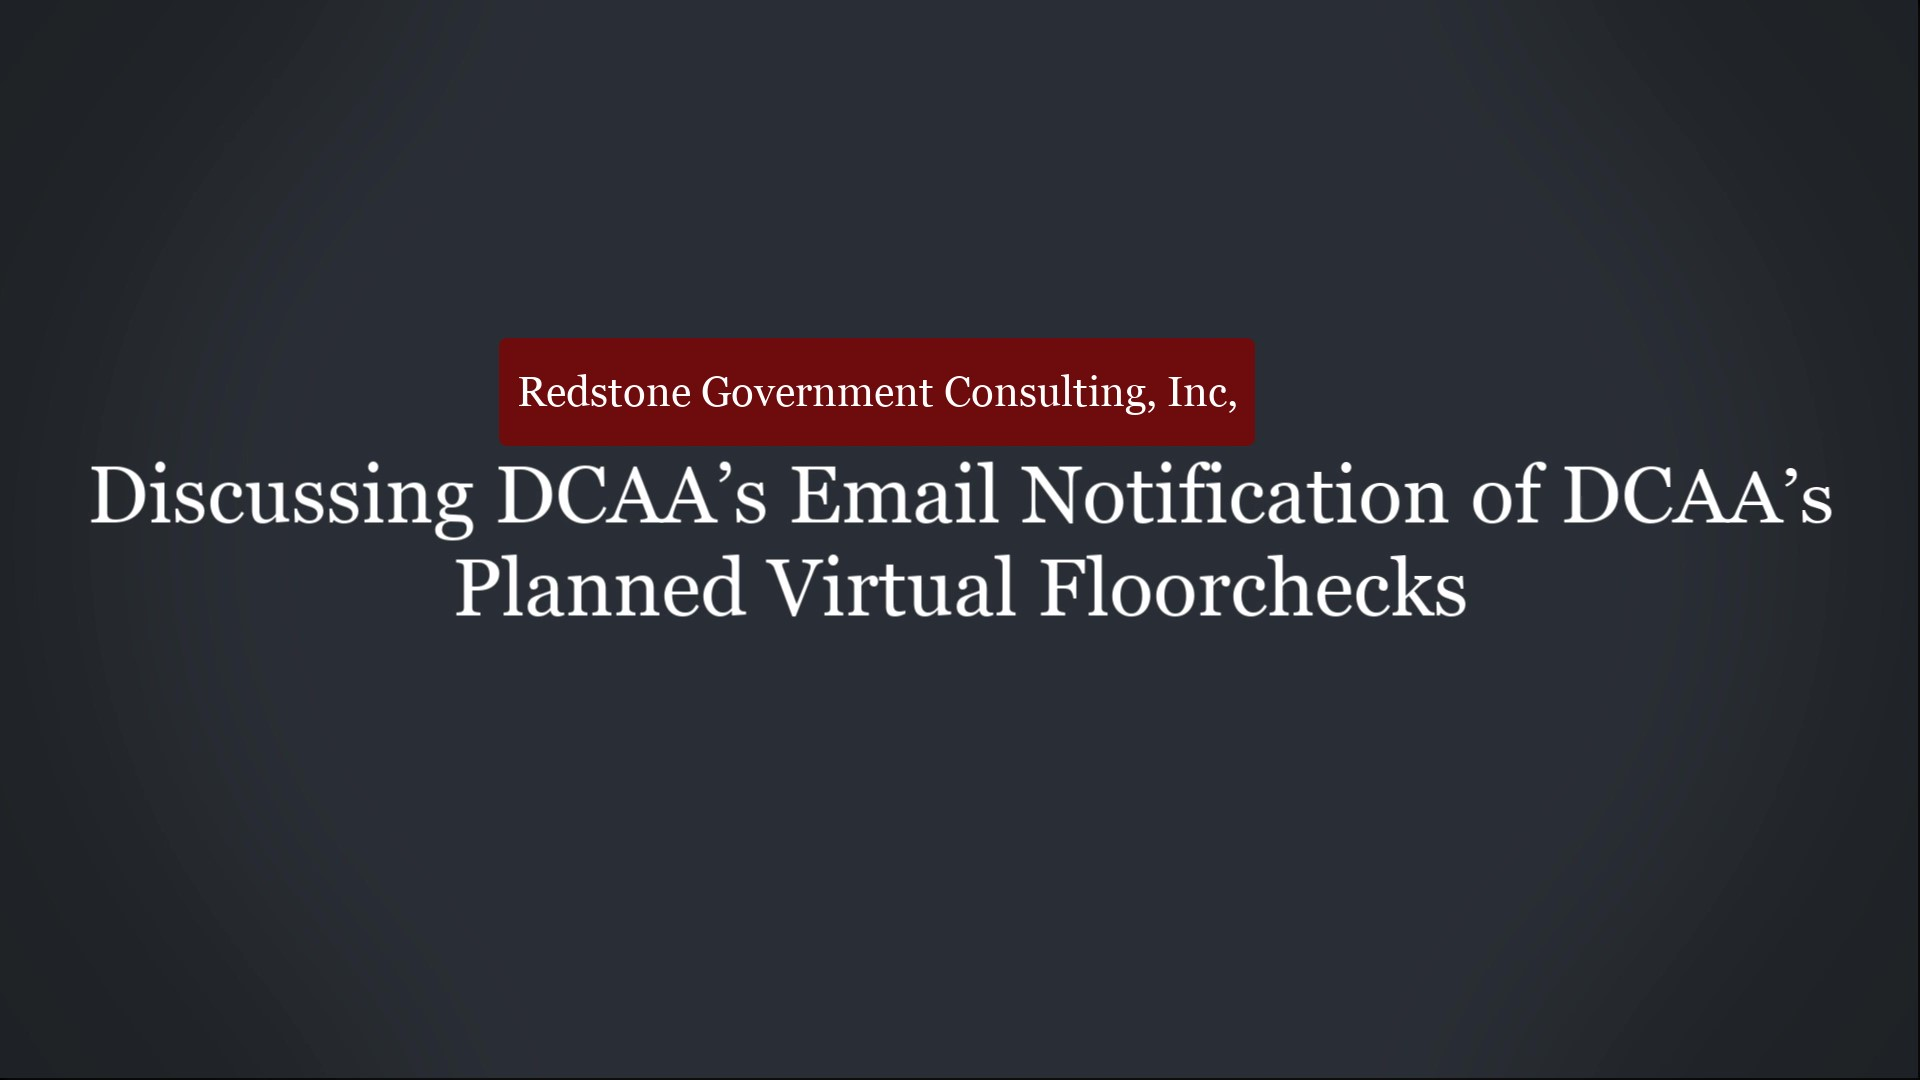 Discussing DCAA's Email Notification of DCAA's Planned Virtual Floorchecks - Redstone gci